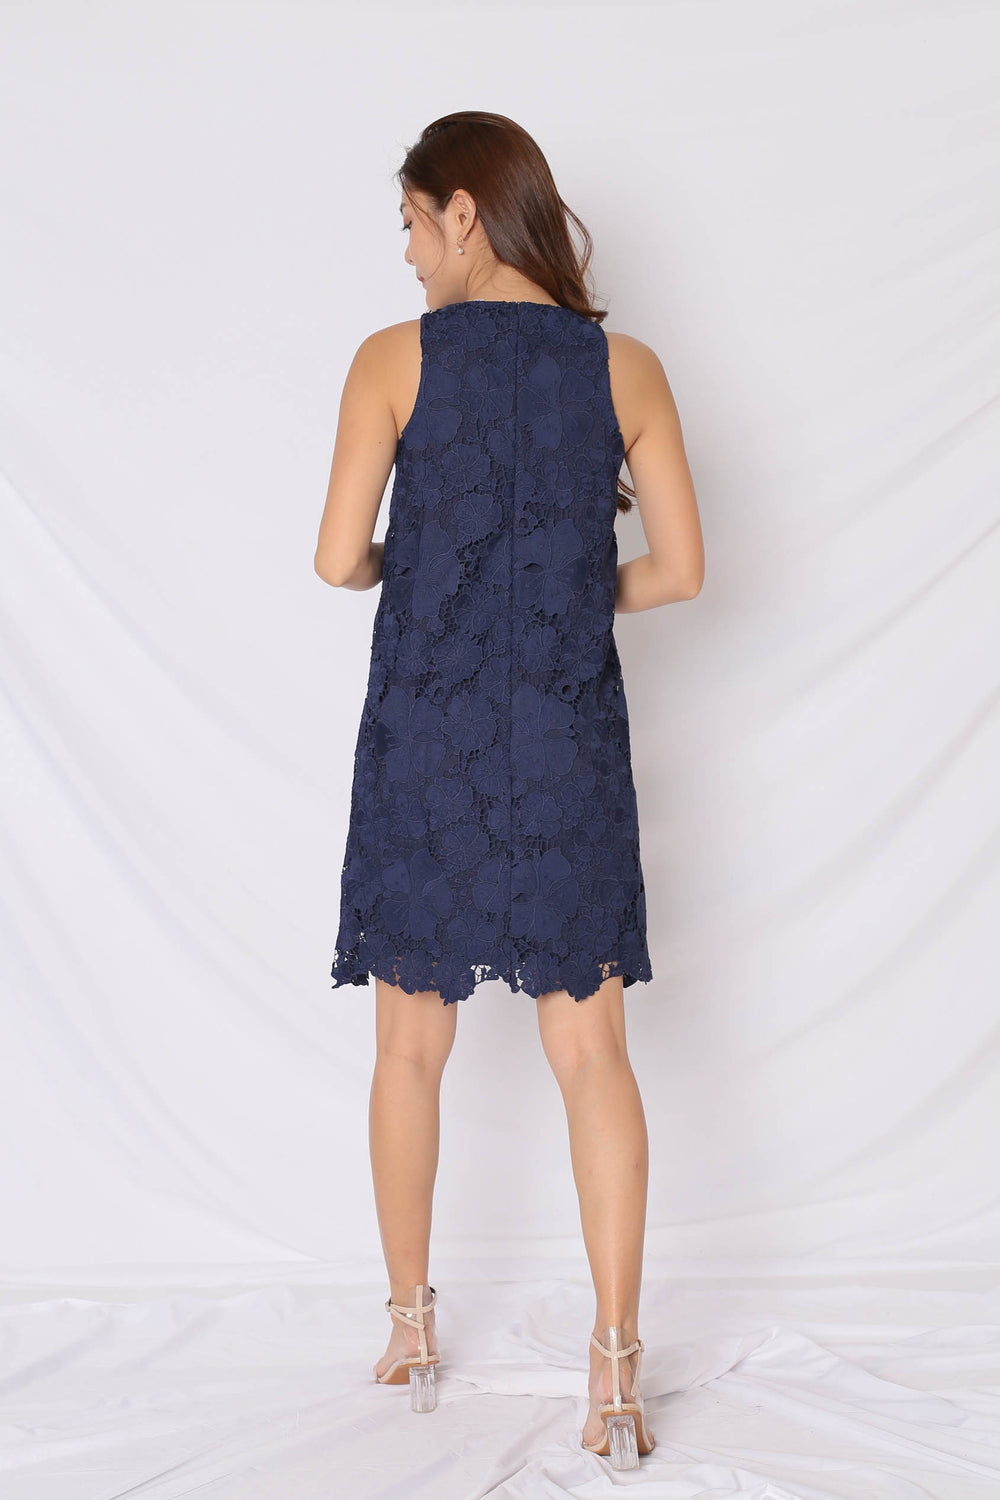 (PREMIUM) NOVA CROCHET DRESS IN NAVY